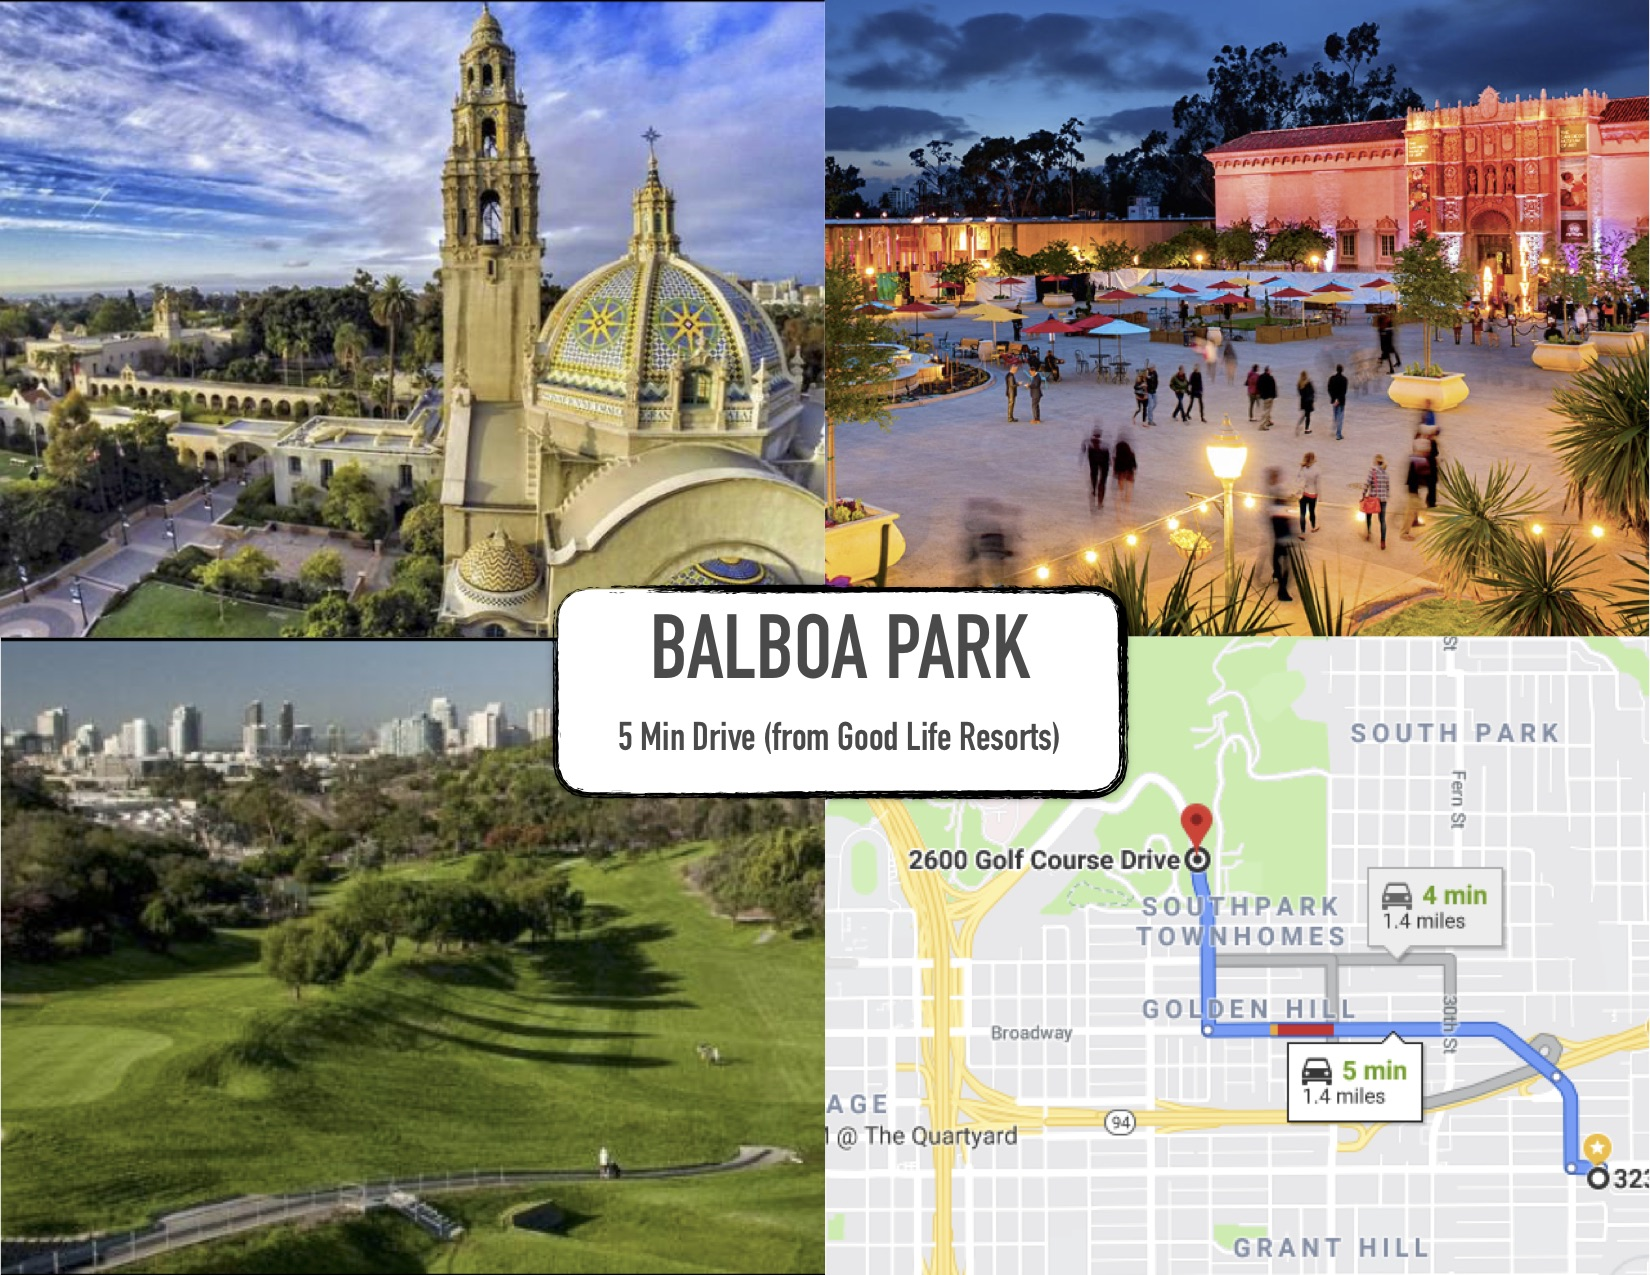 Good Life Resorts - guidbook - BALBOA PARK - market.jpg